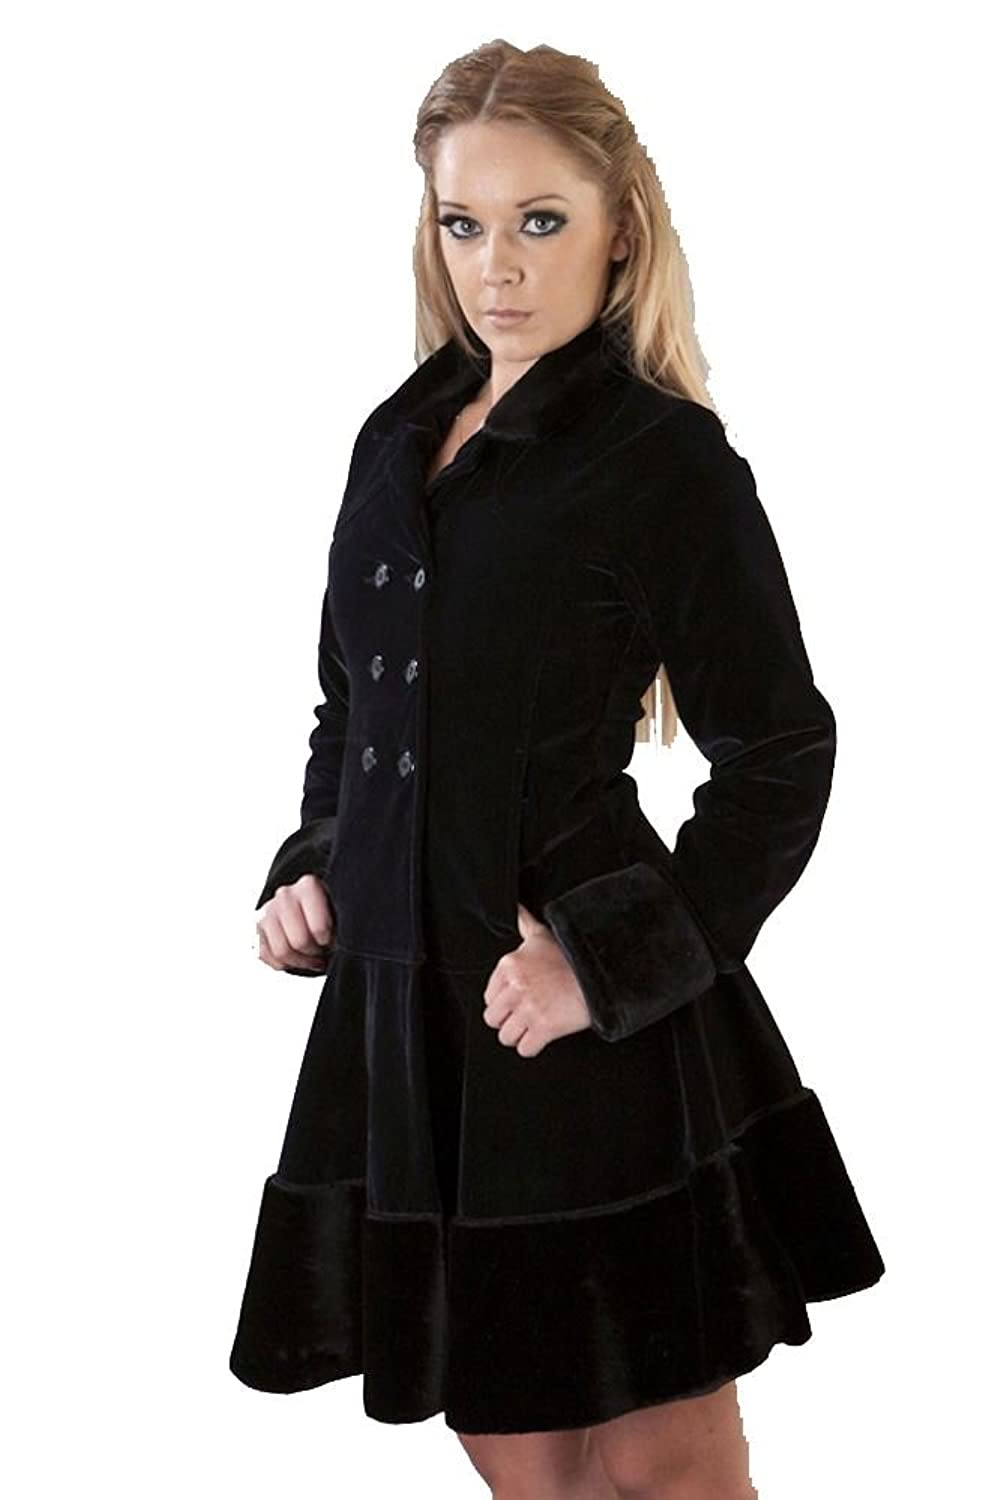 Vintage Coats & Jackets | Retro Coats and Jackets Dark womens coat in black velvet flock and black fur by Burleska $139.95 AT vintagedancer.com